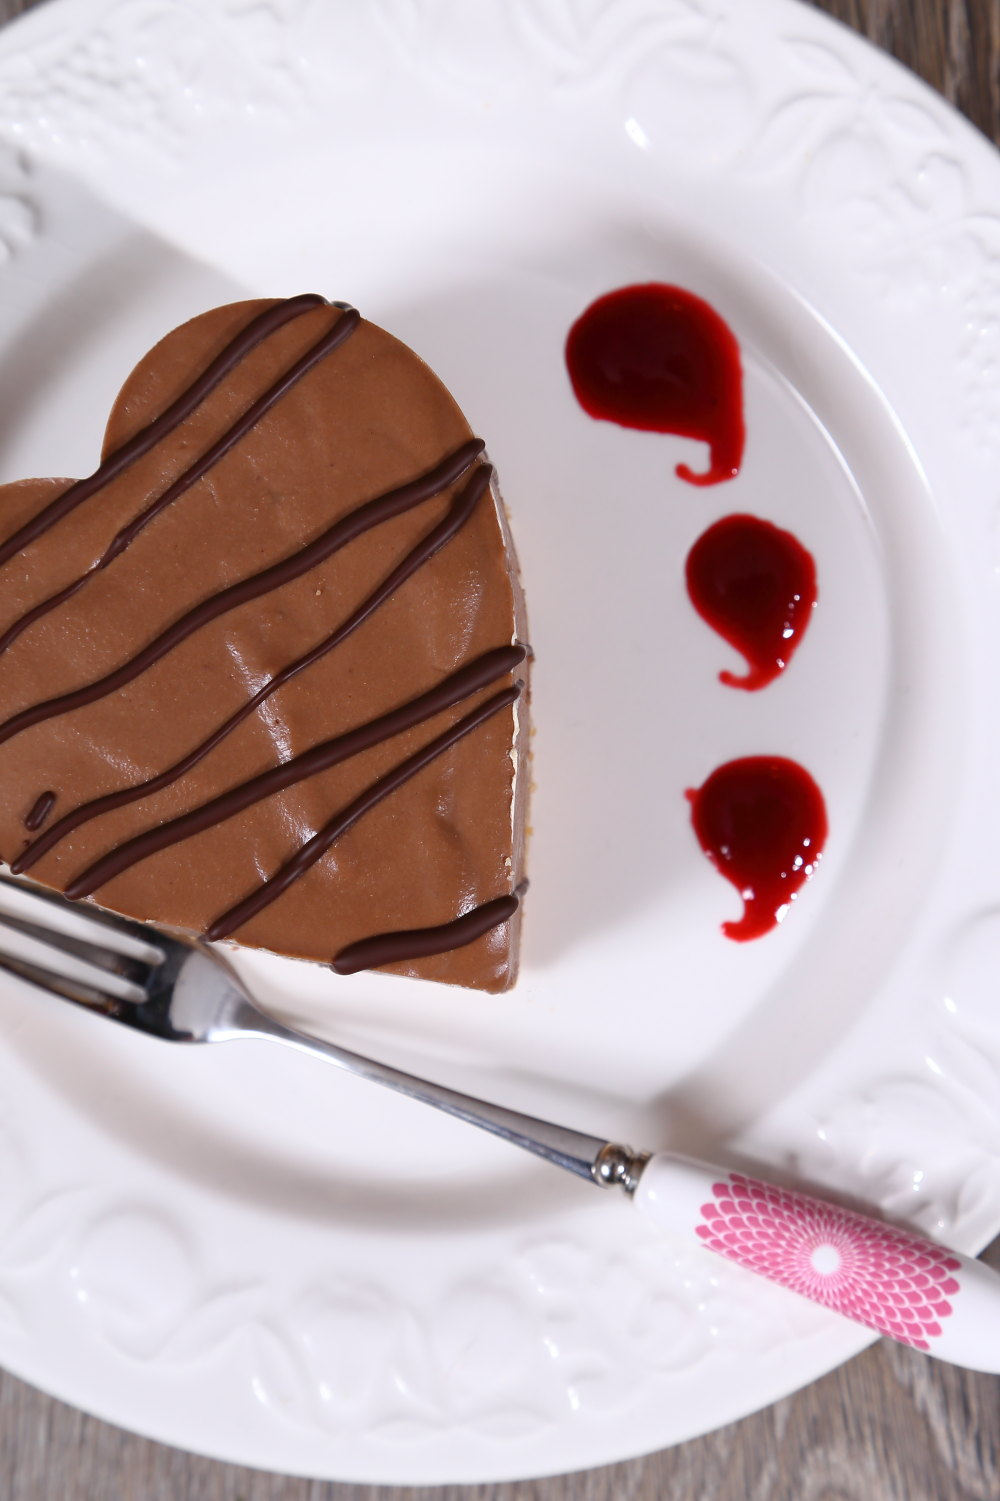 Chocolate Valentine's Hearts, A Chocolate Tart recipe for your vegan valentine.